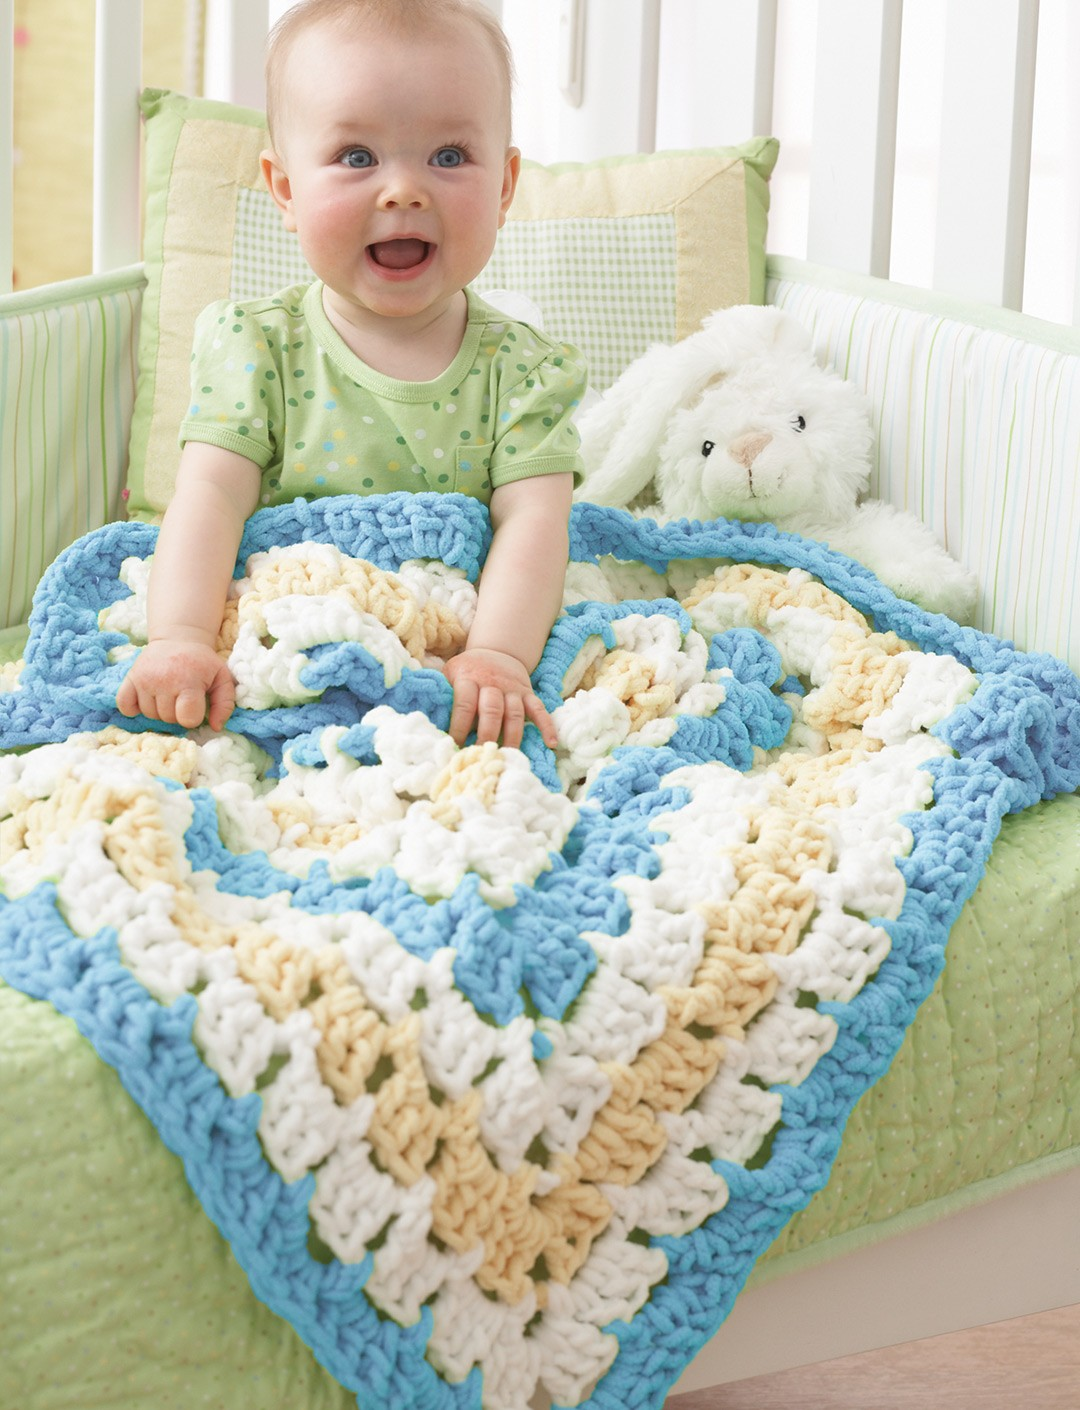 Easy Crochet Baby Blanket Patterns For Beginners : Bernat From the Middle Baby Blanket, Crochet Pattern ...